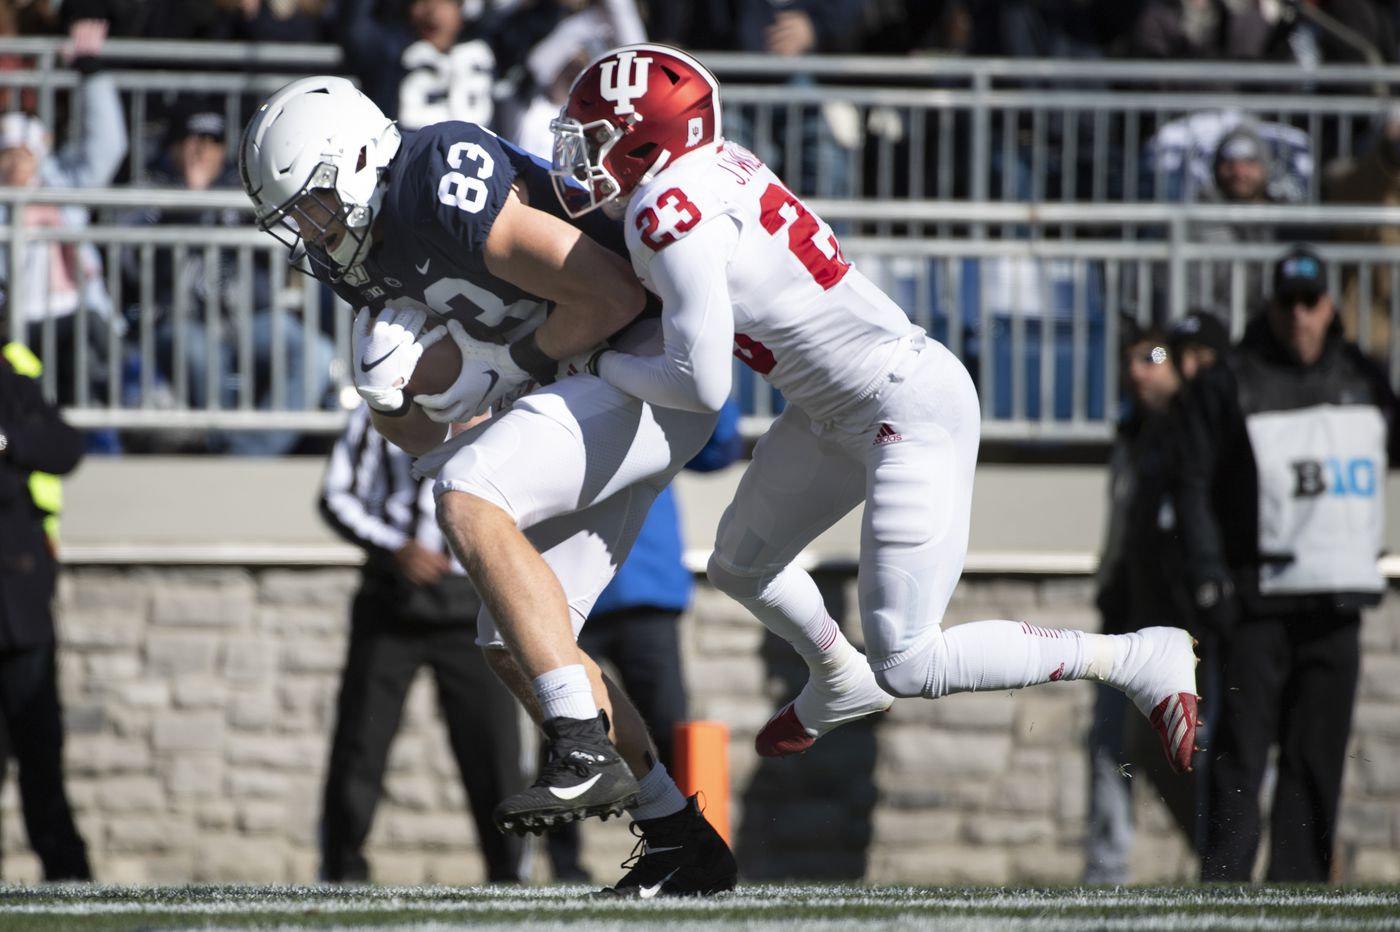 Three takeaways from Penn State's 34-27 win over Indiana